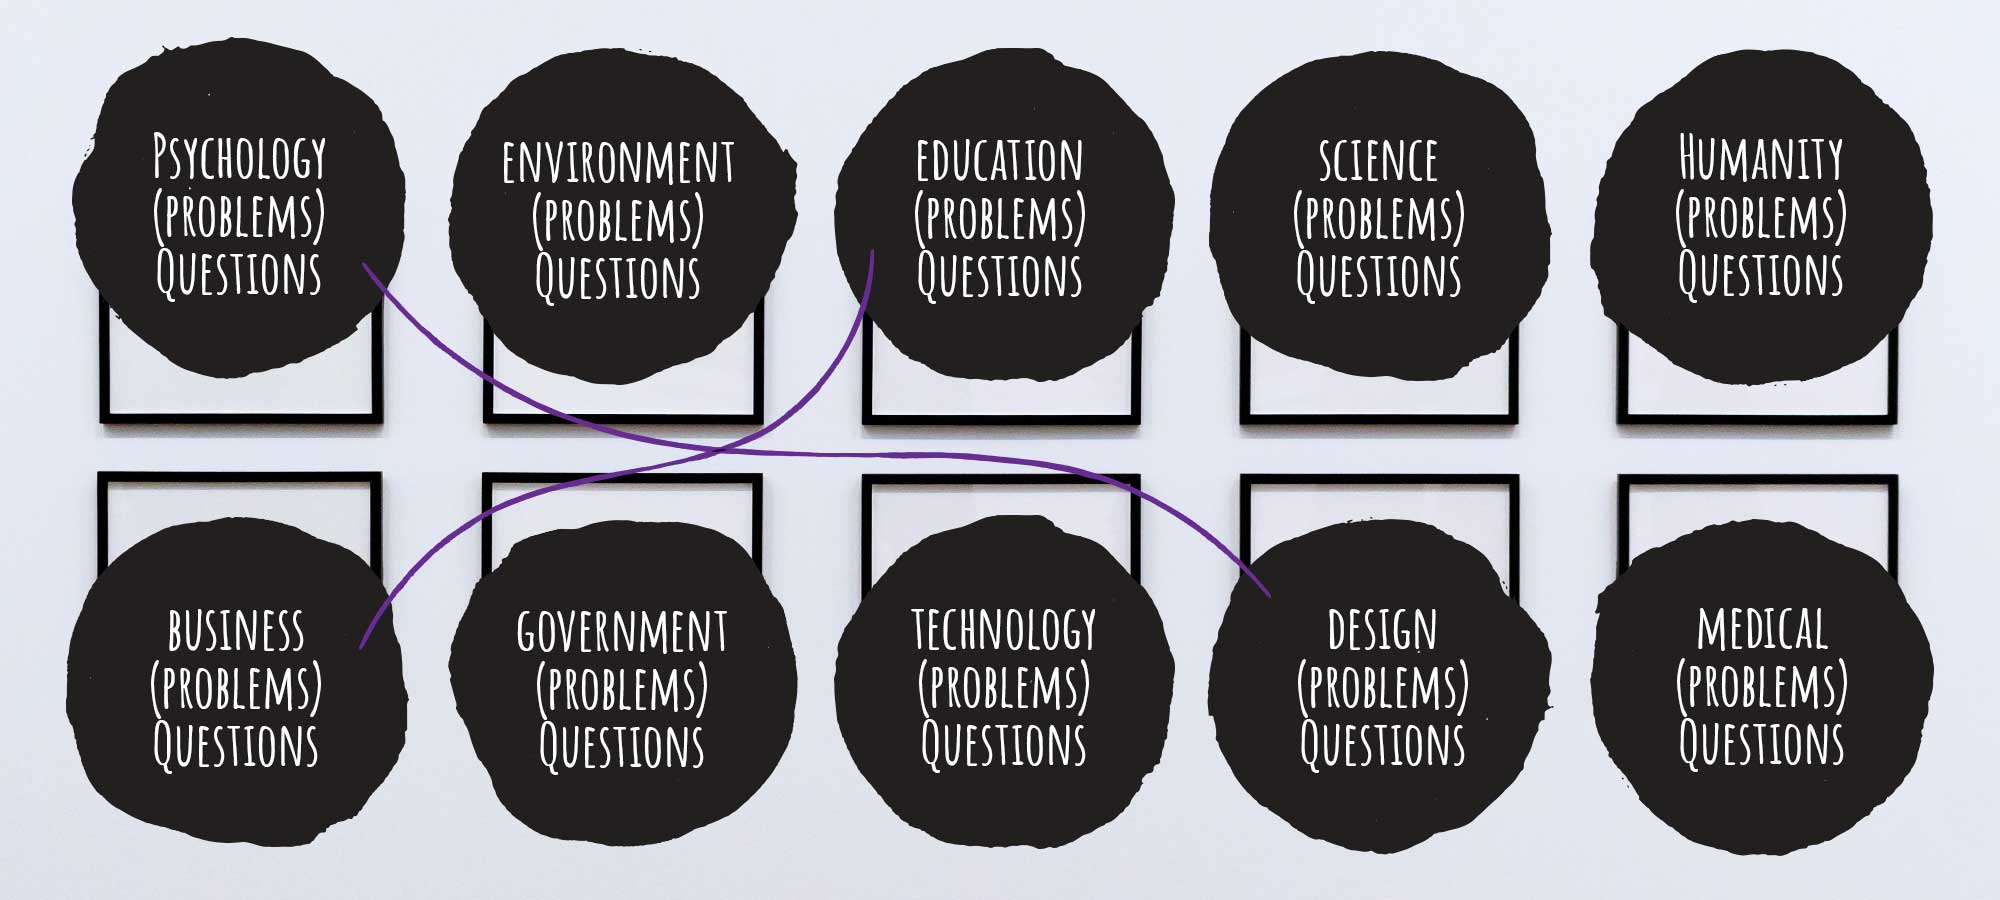 problems-questions-image-7.jpg